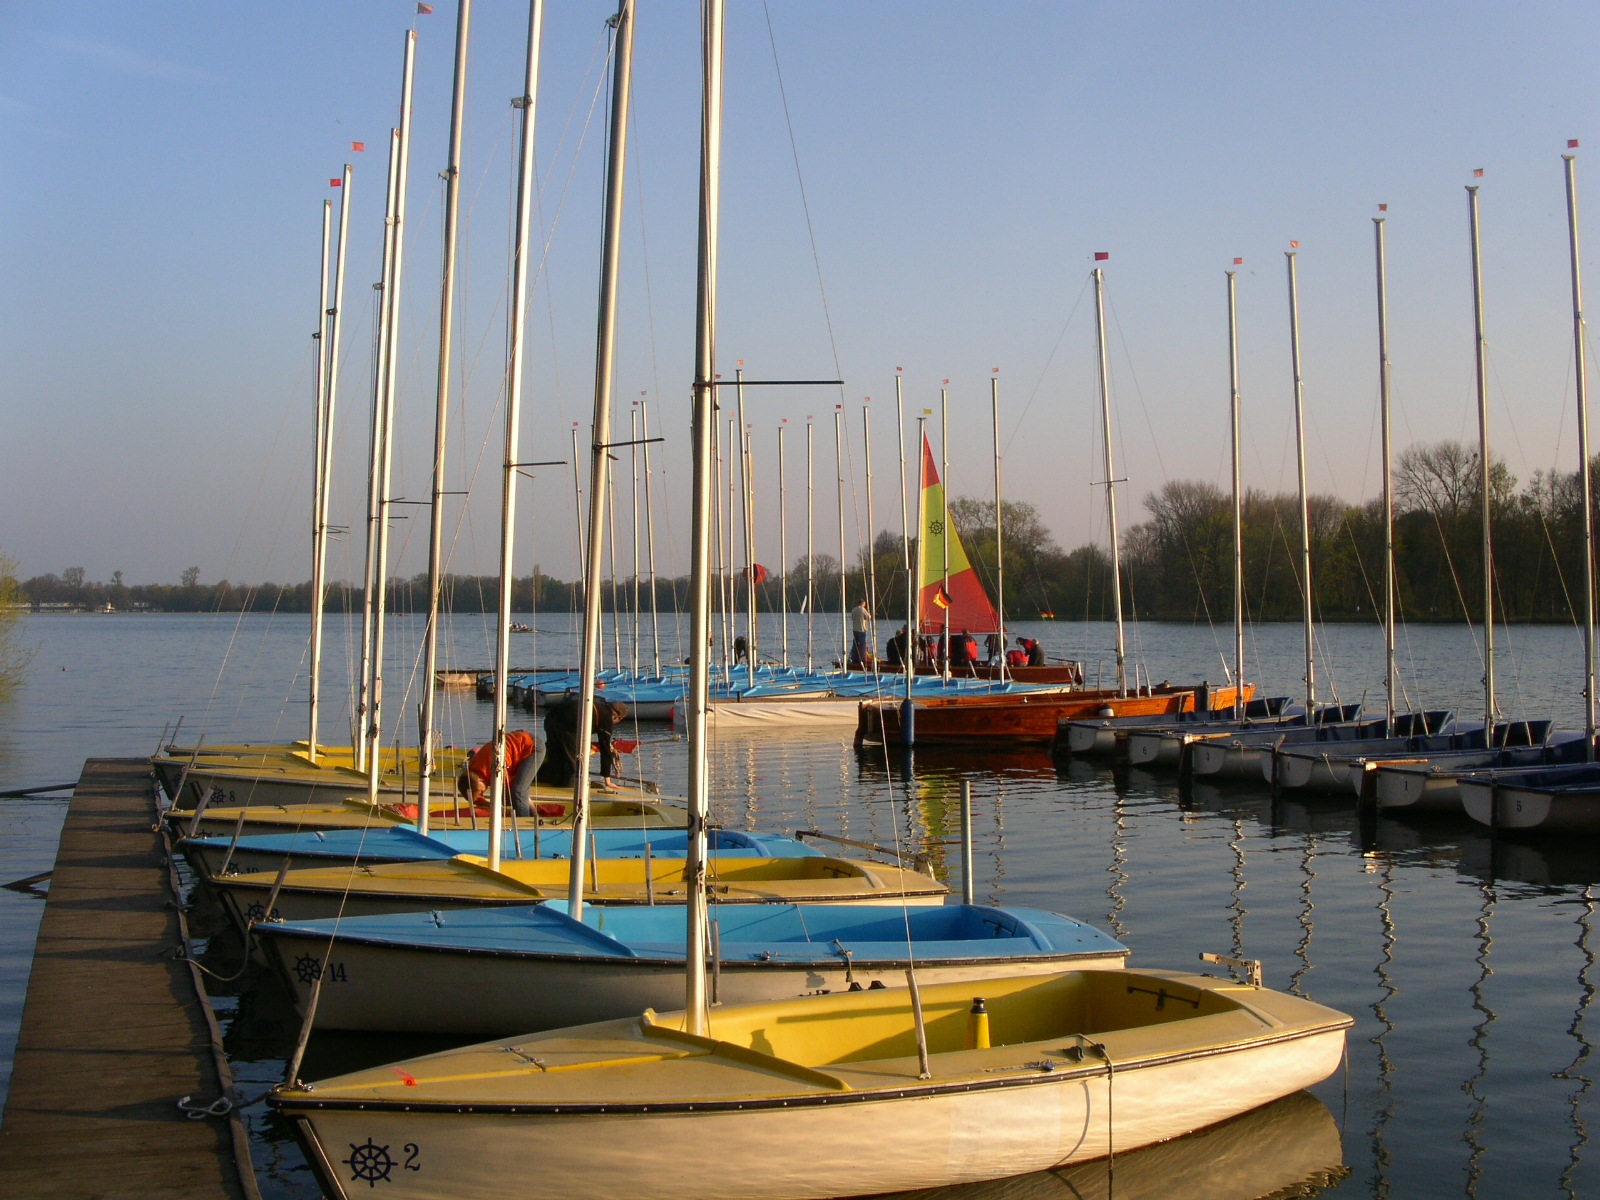 Yachtschule Hannover